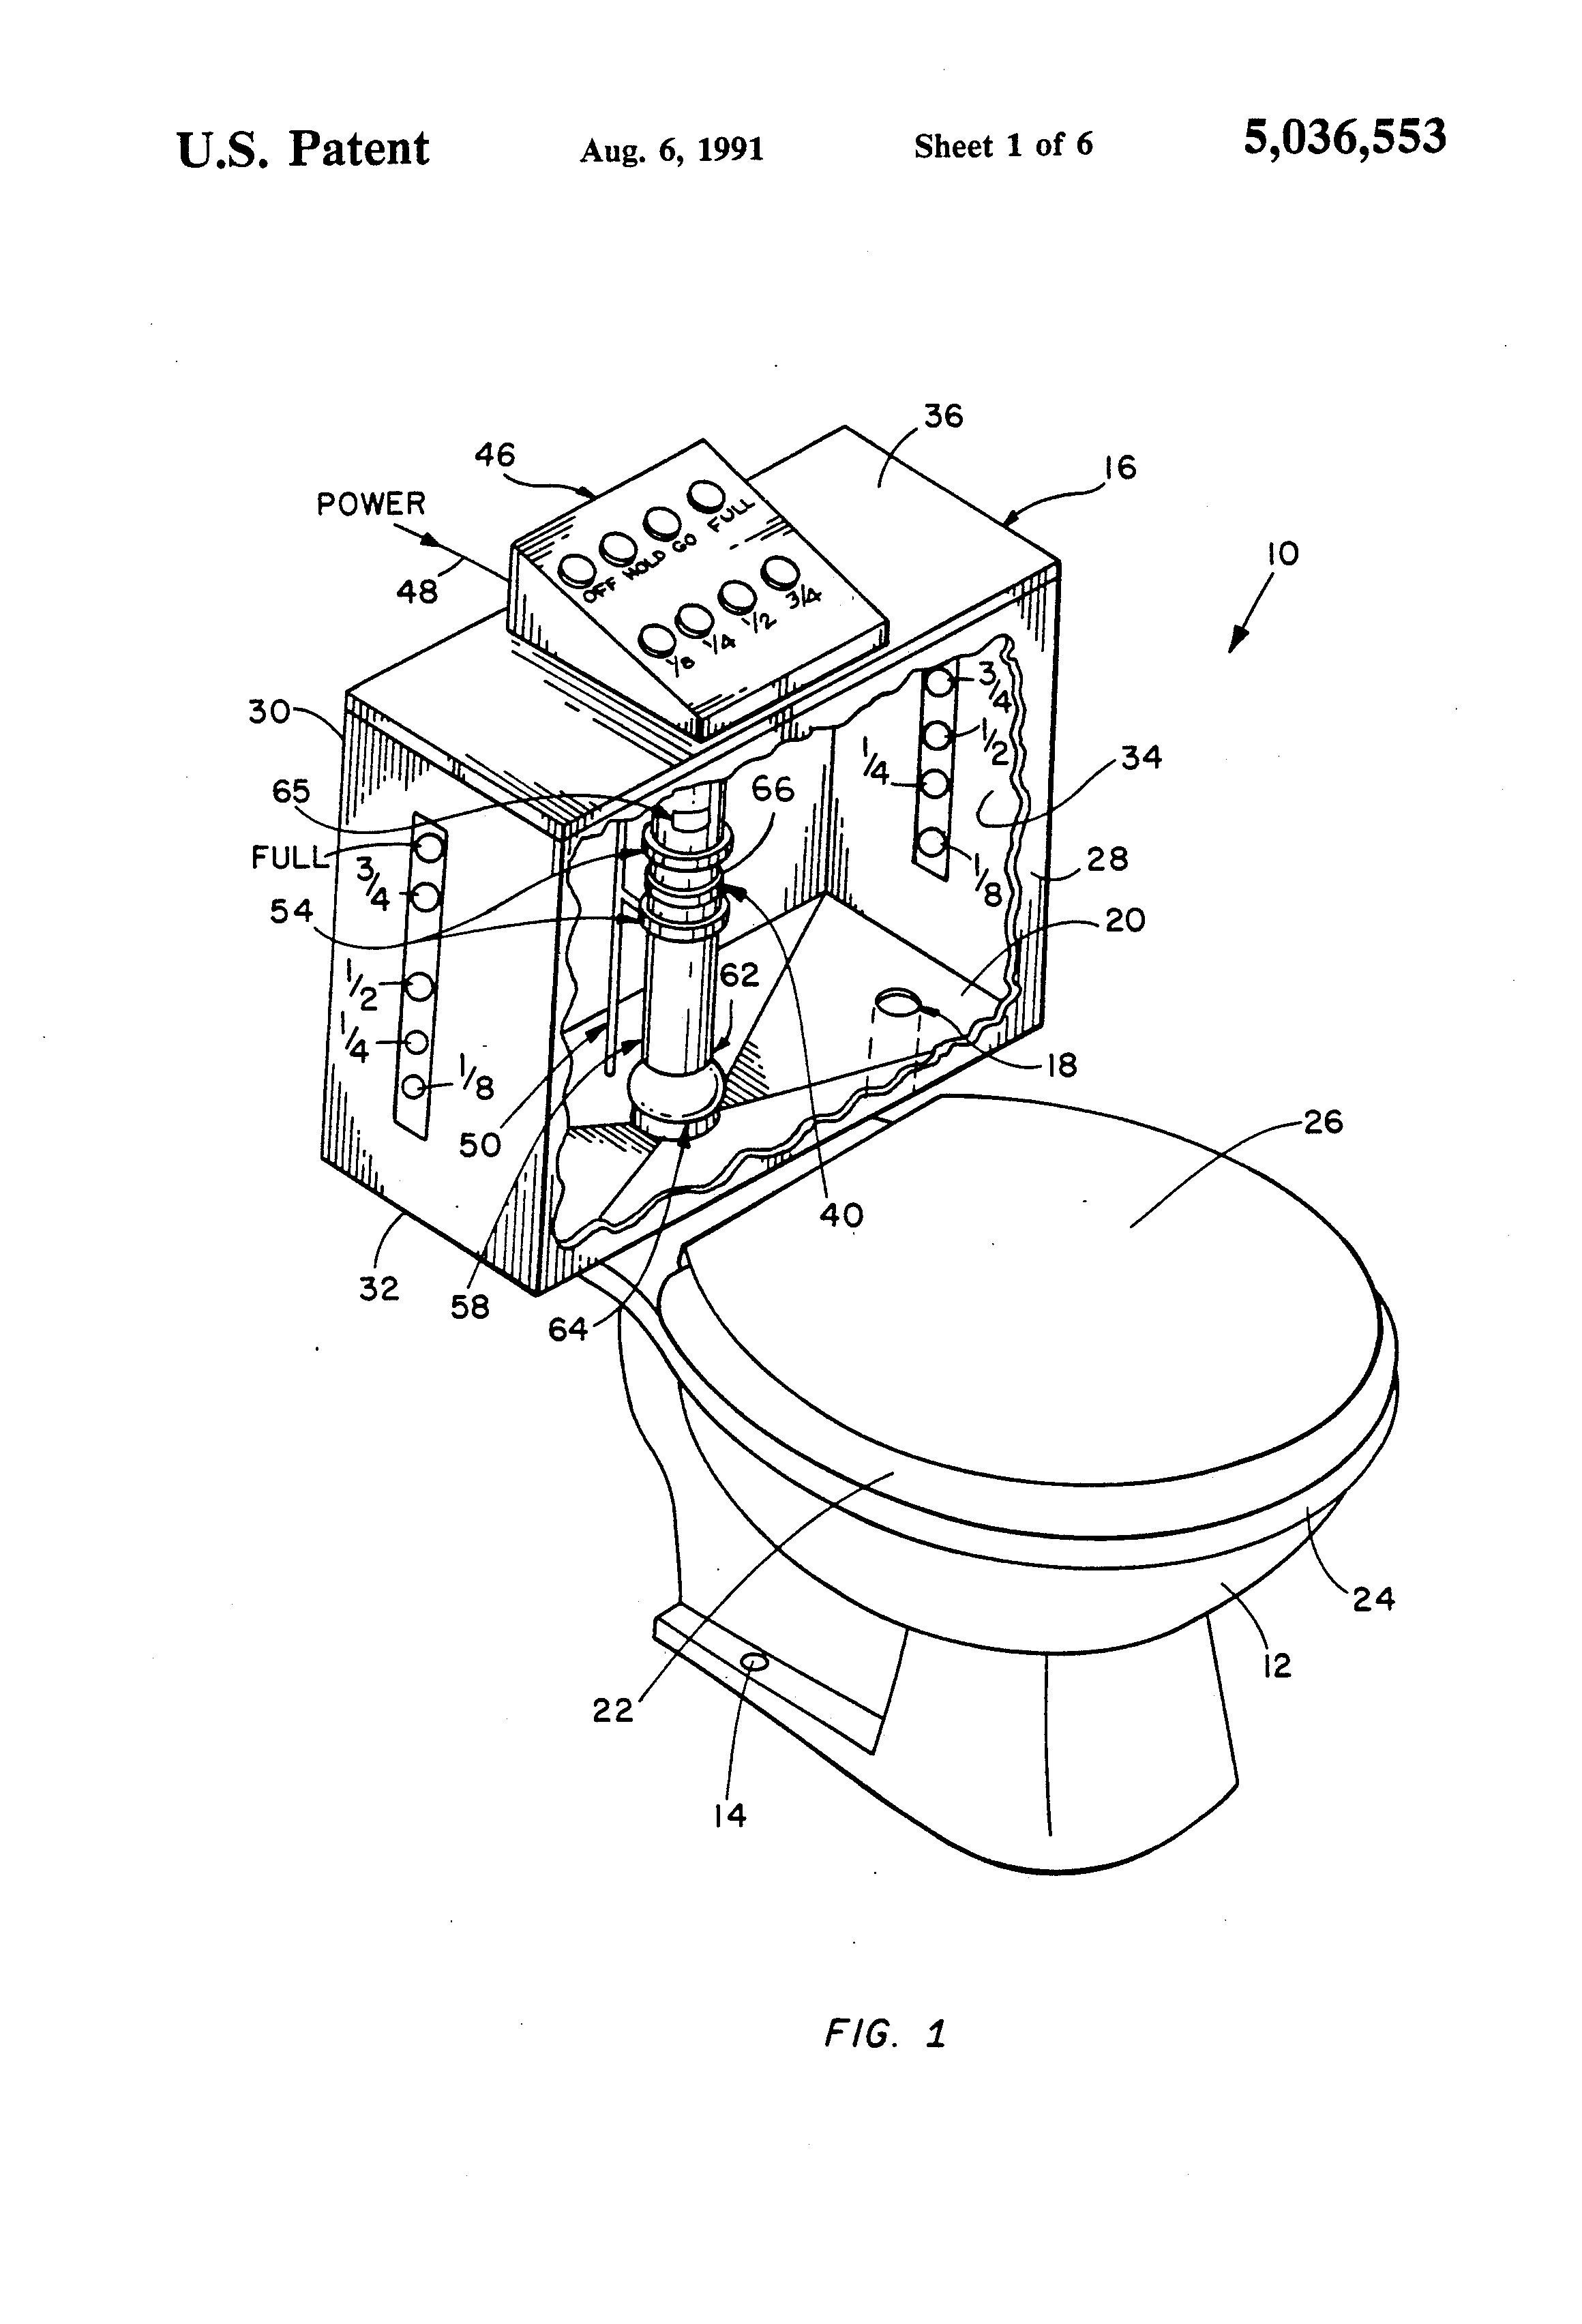 Patent Us5036553 Fully Automatic Toilet System Google